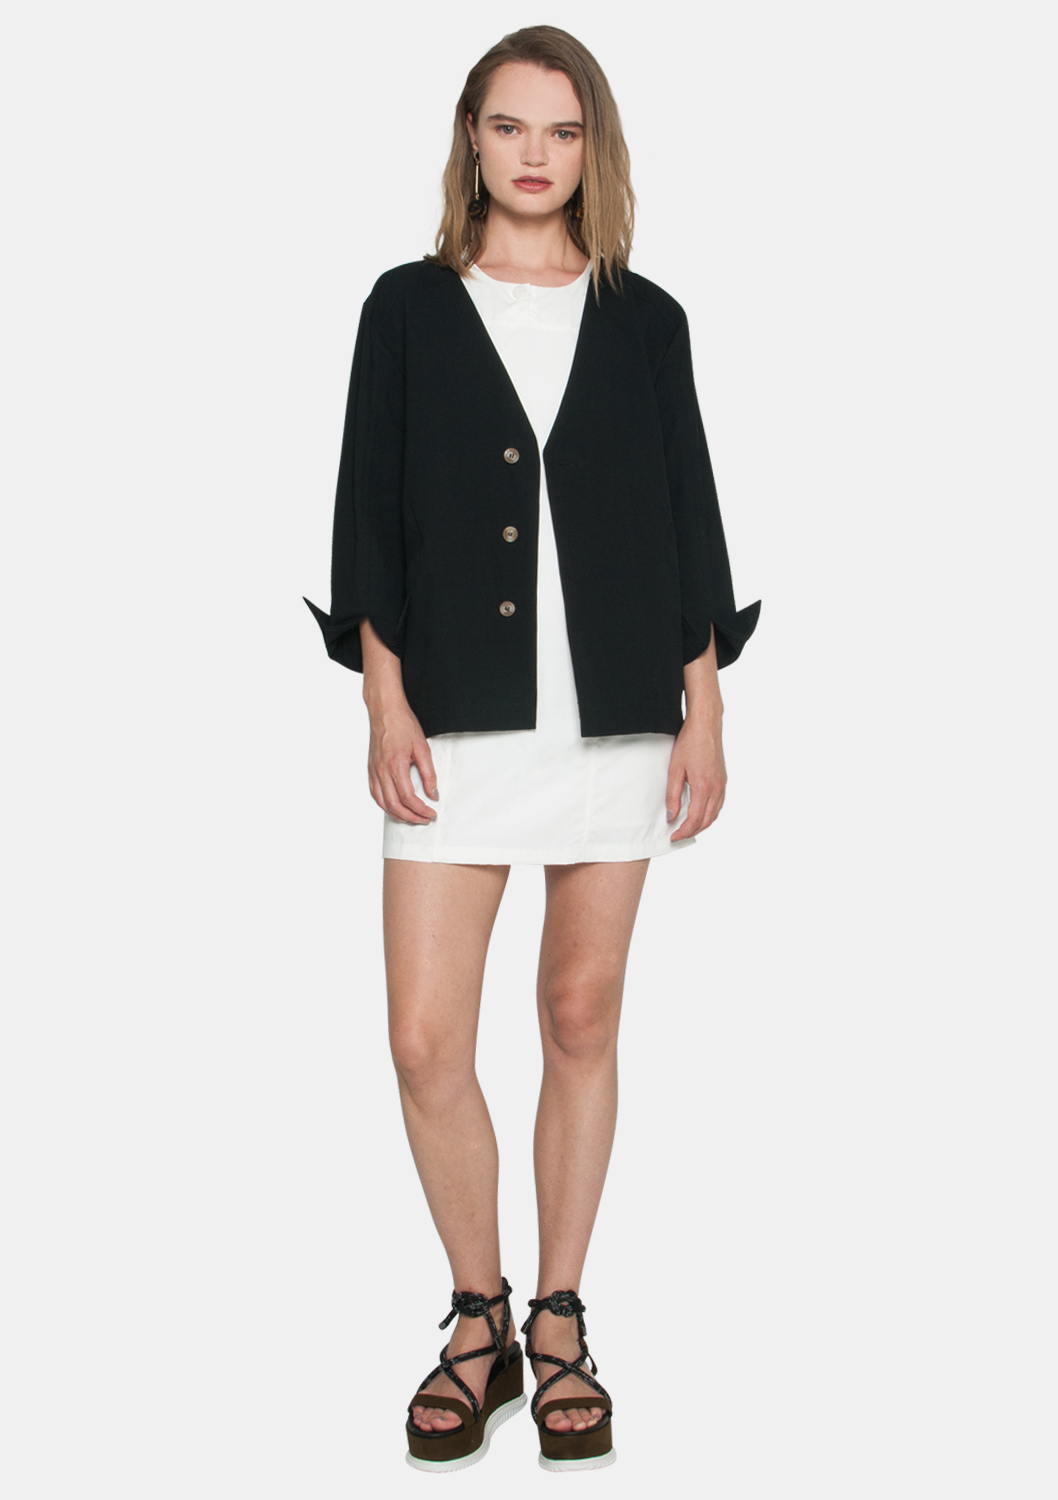 a3a317375f Oversized Buttoned Jacket - ELLYSAGE